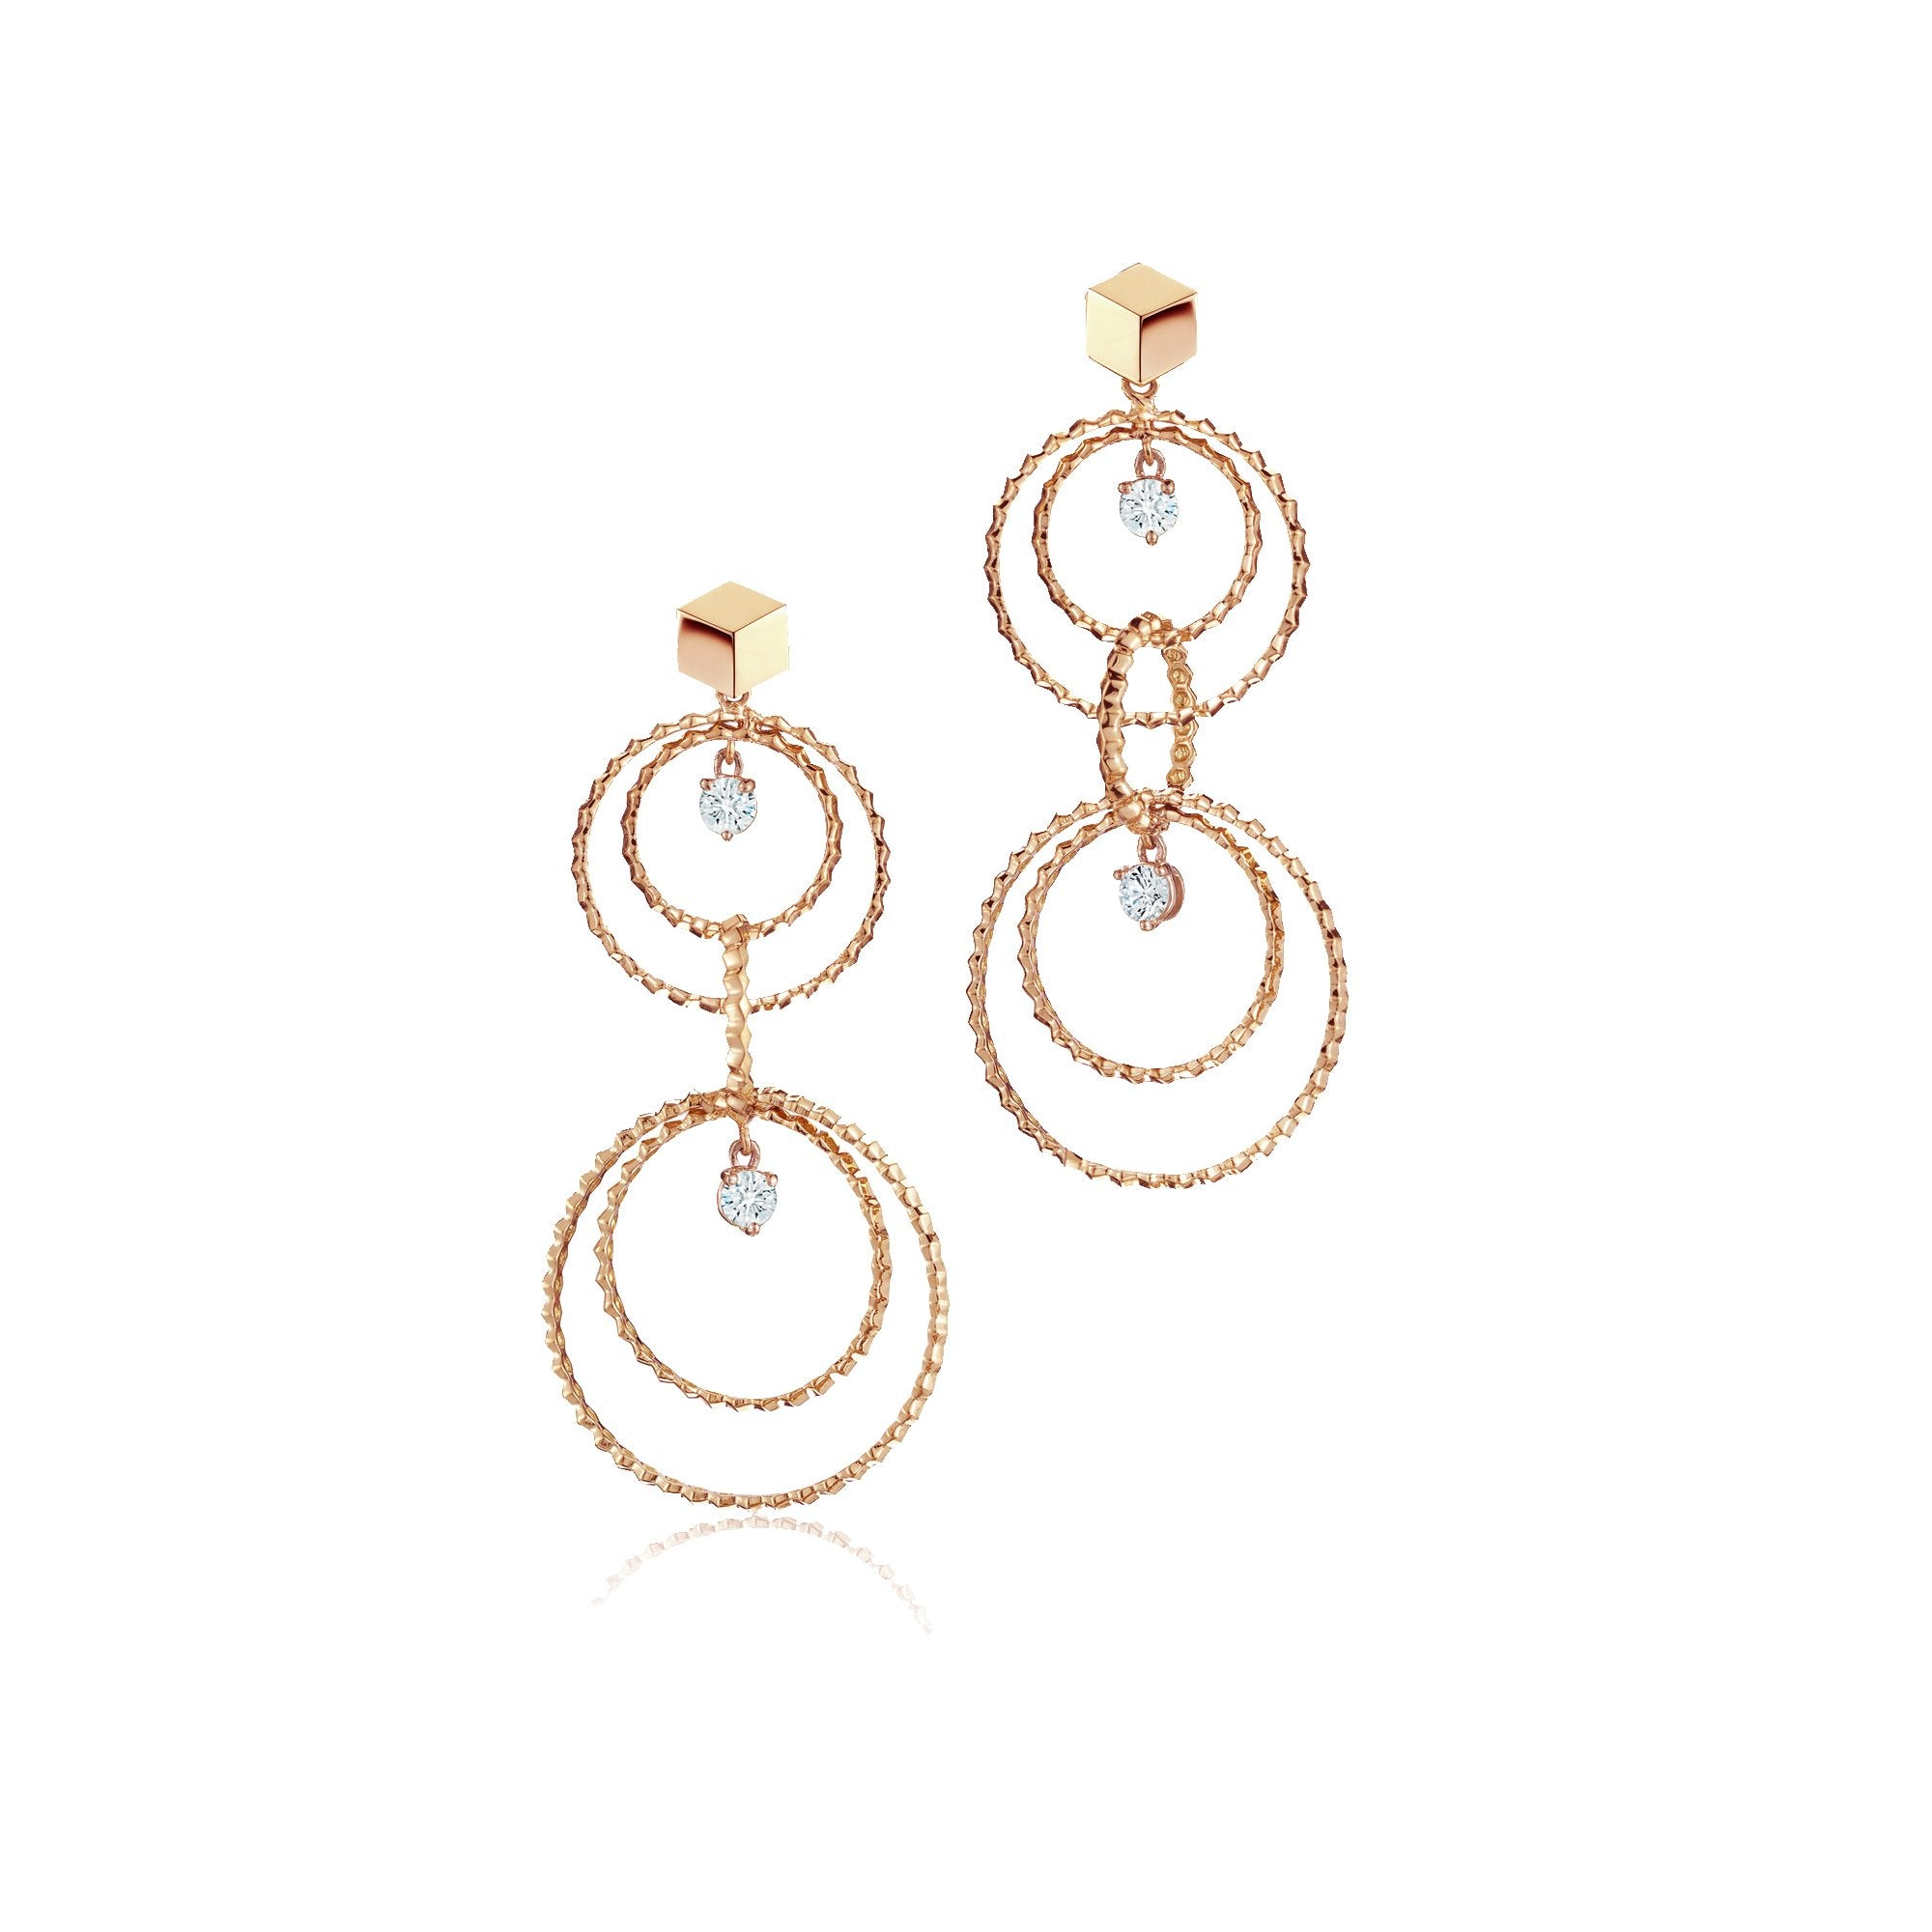 Rose Gold and Diamond 'Brillante® Circoli' Earrings, Medium - Paolo Costagli - 1